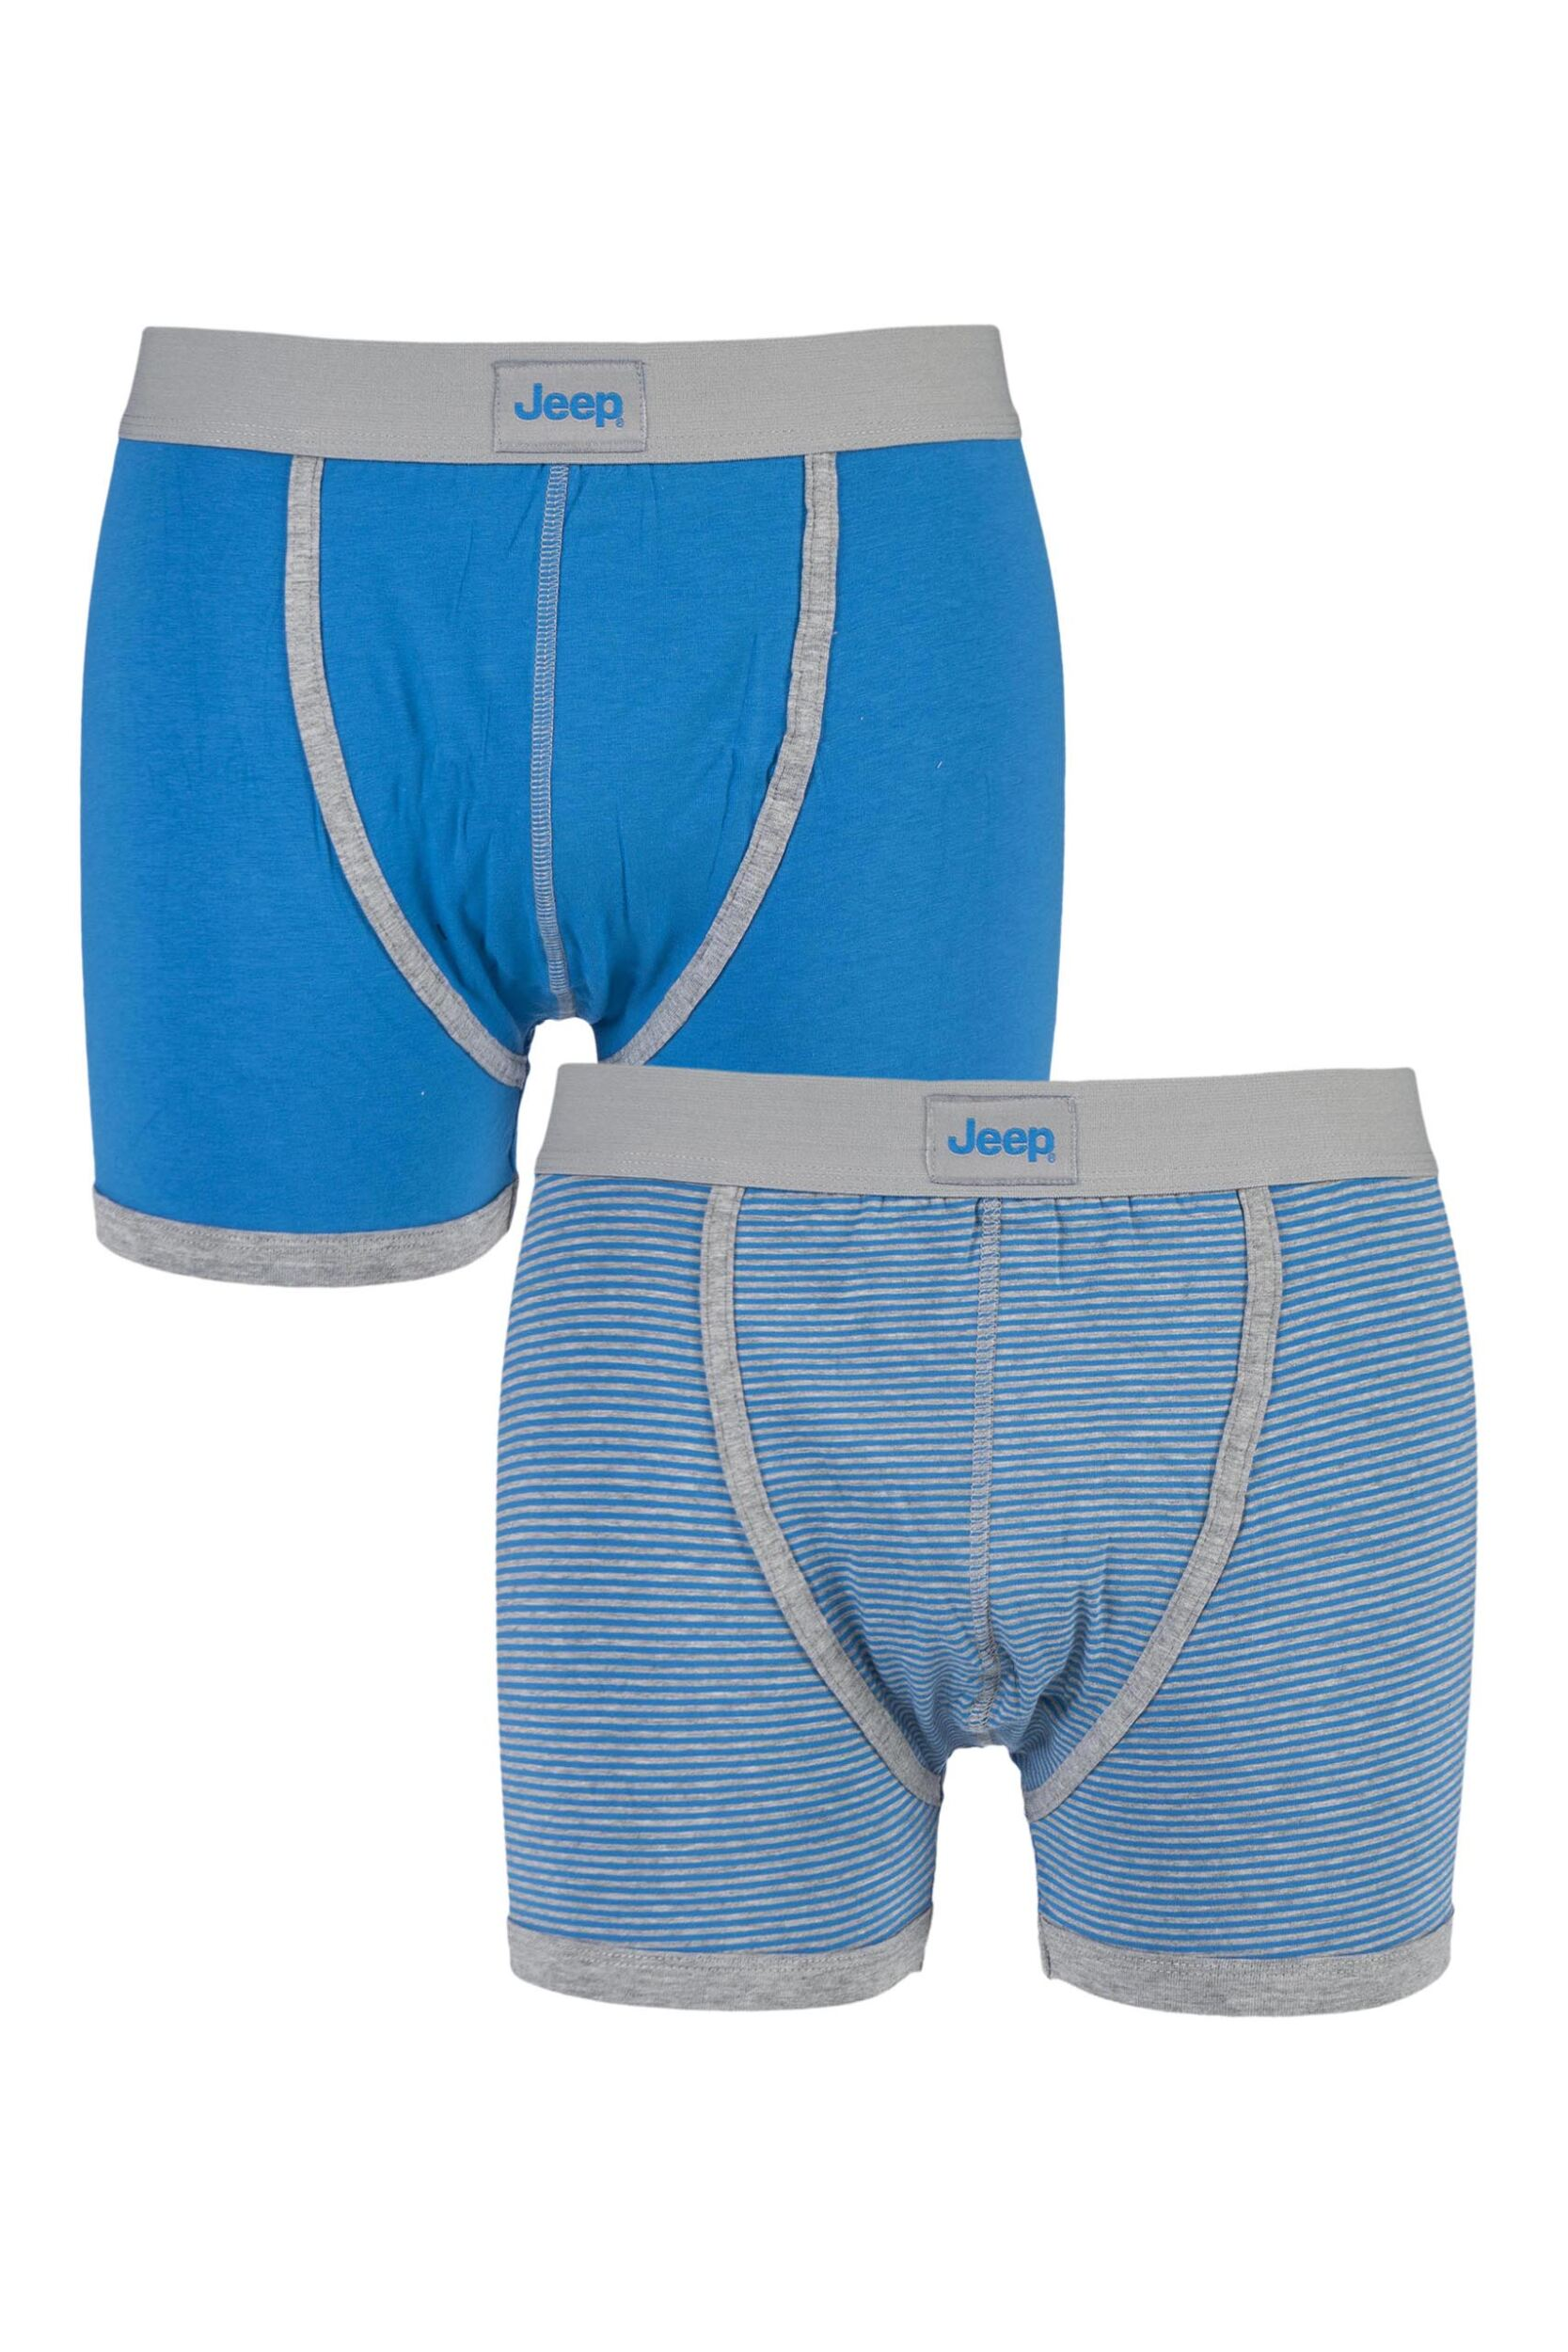 Mens 2 Pair Jeep Cotton Plain & Narrow Stripe Hipster Shorts In Royal